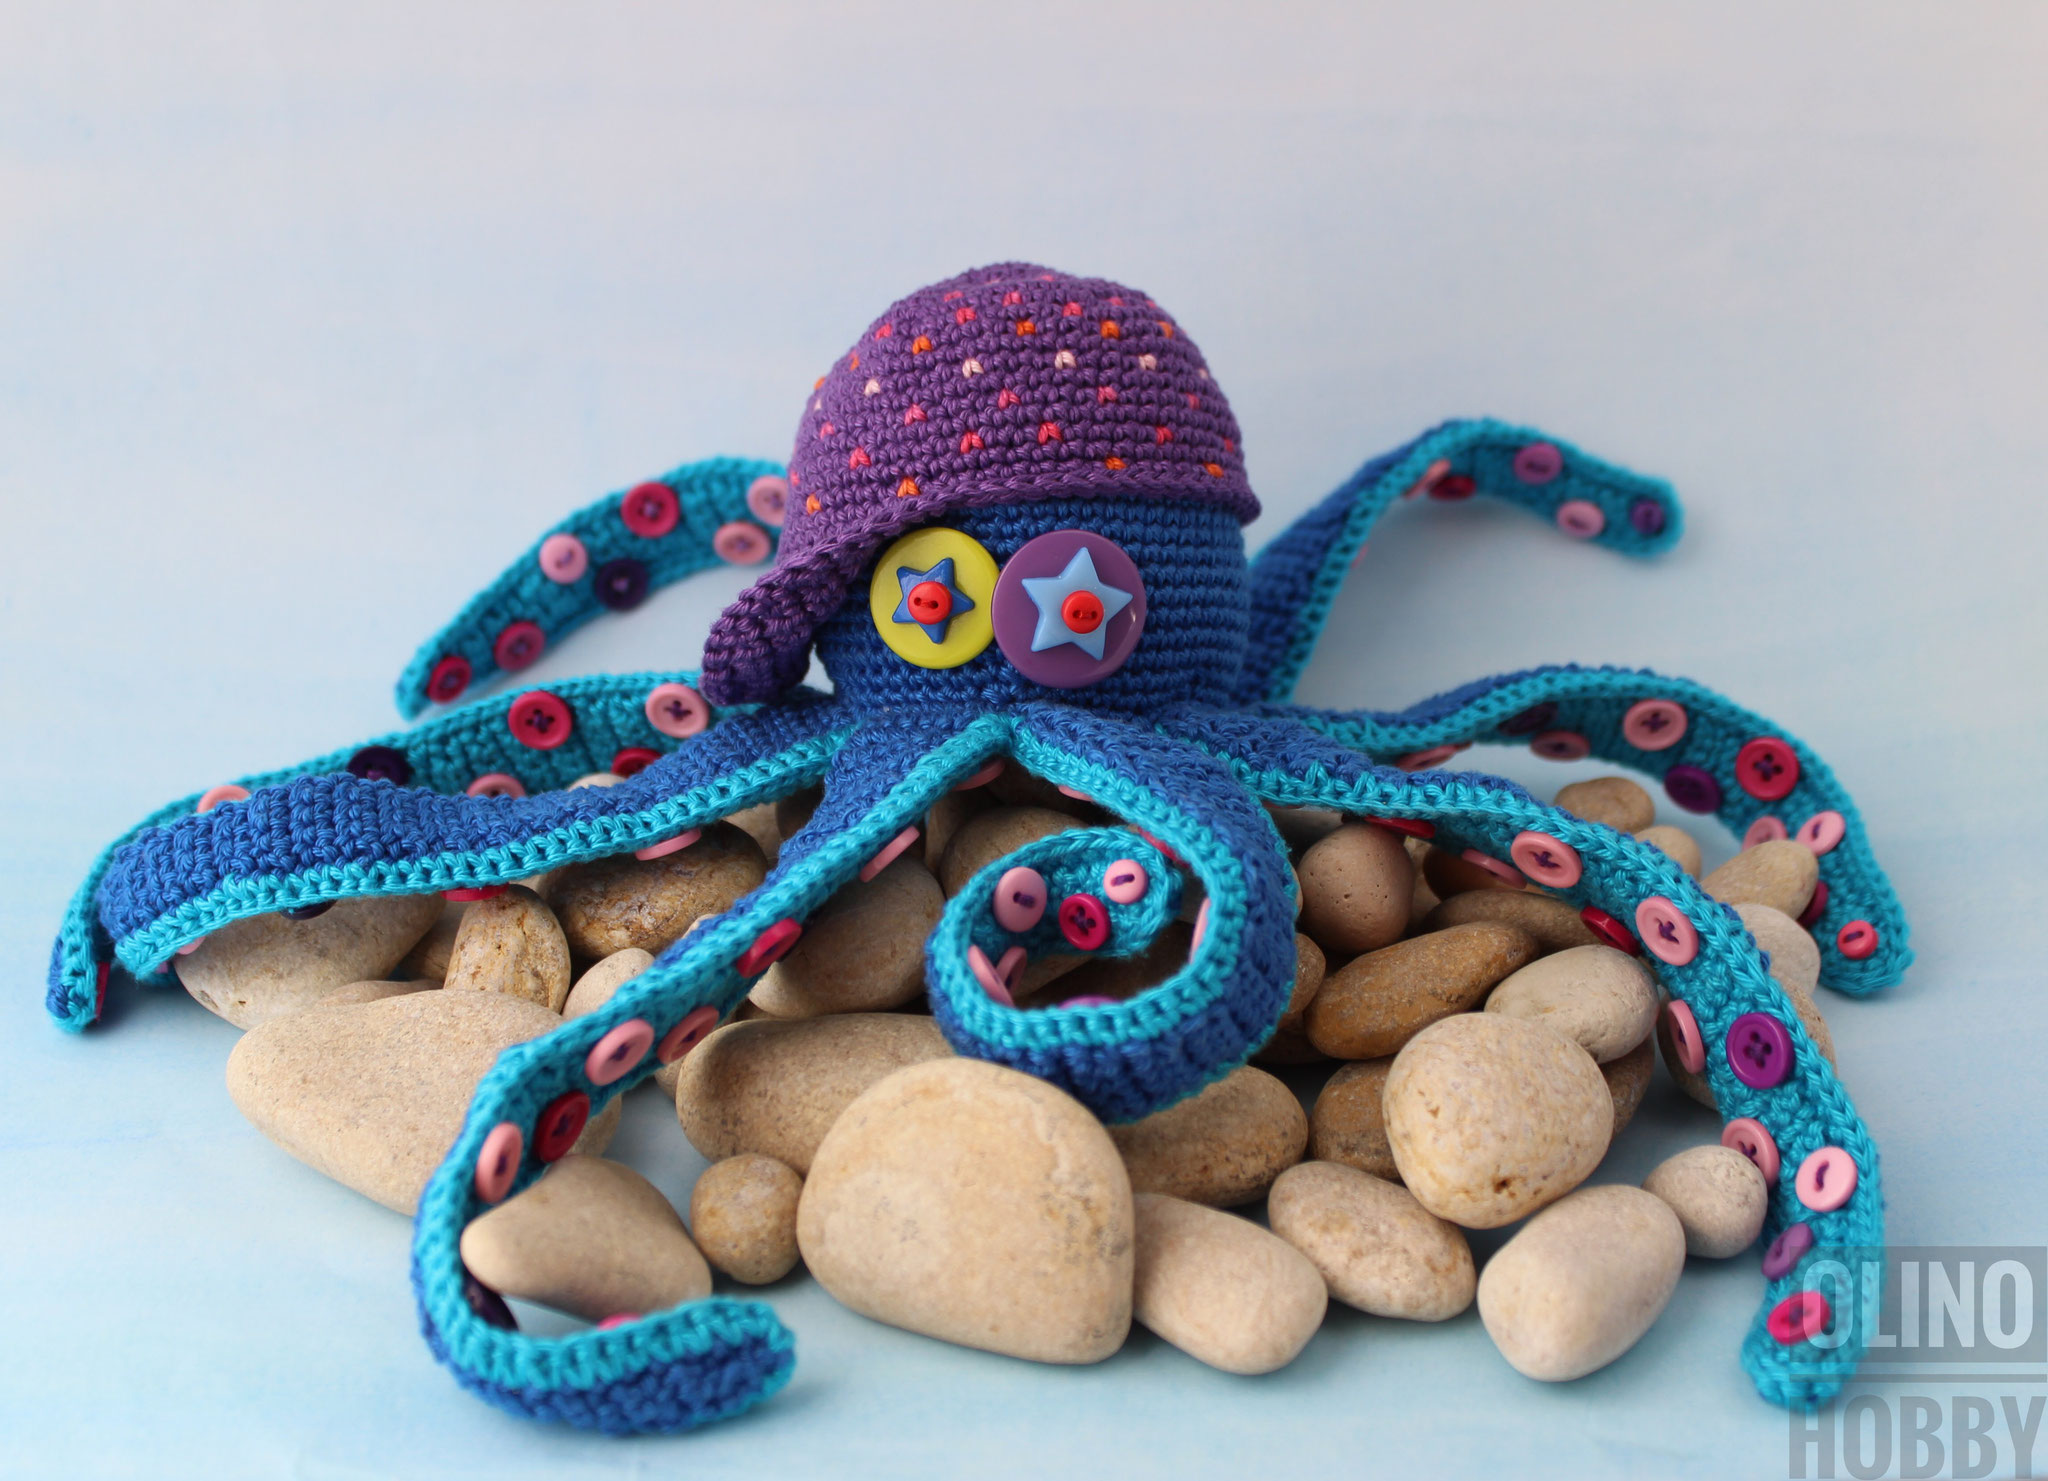 Octopus Crochet Pattern $4.99